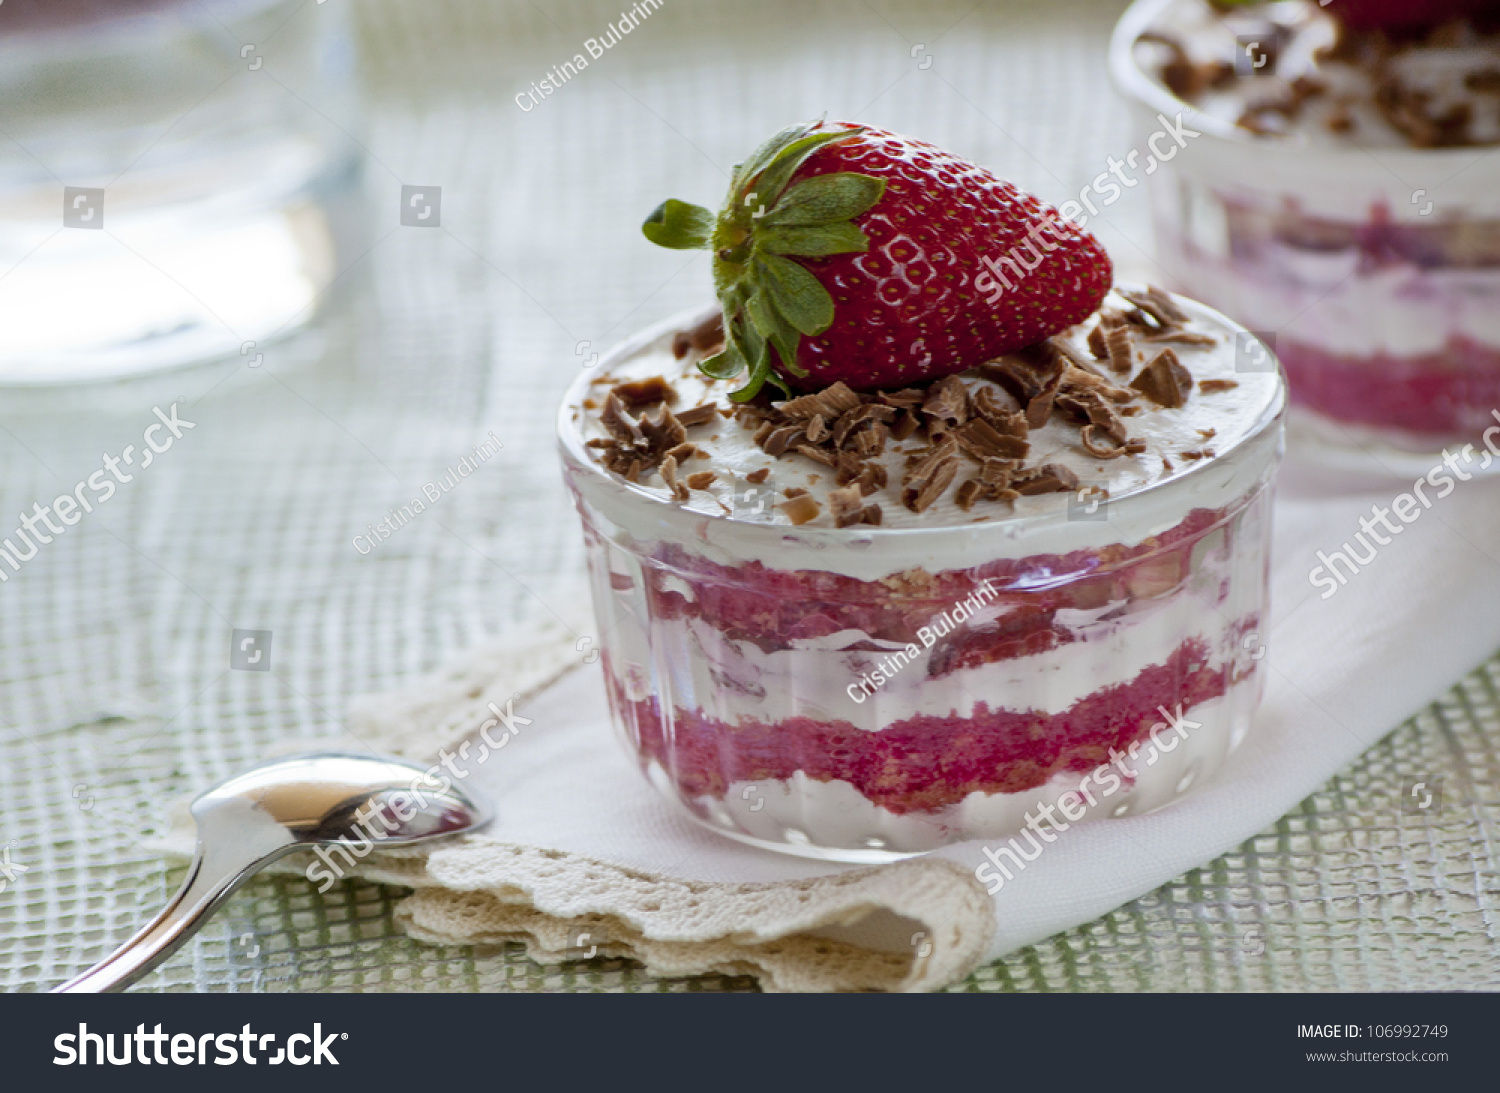 Strawberries And Whipped Cream Bowl Bowl With Whipped Crea...